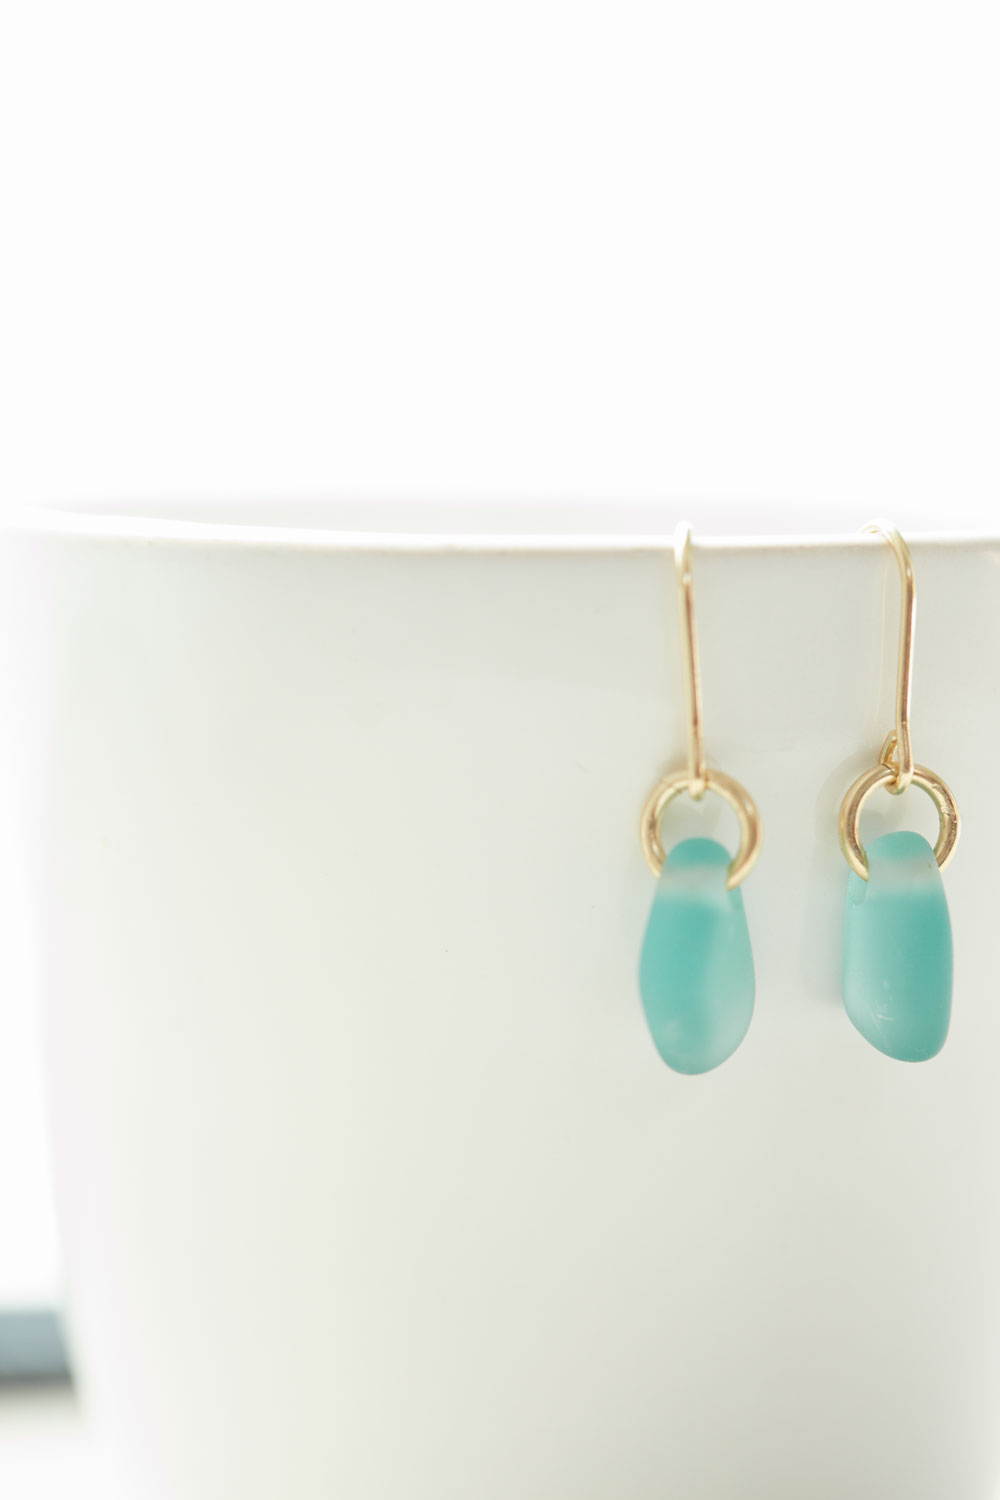 how to make sea glass earrings